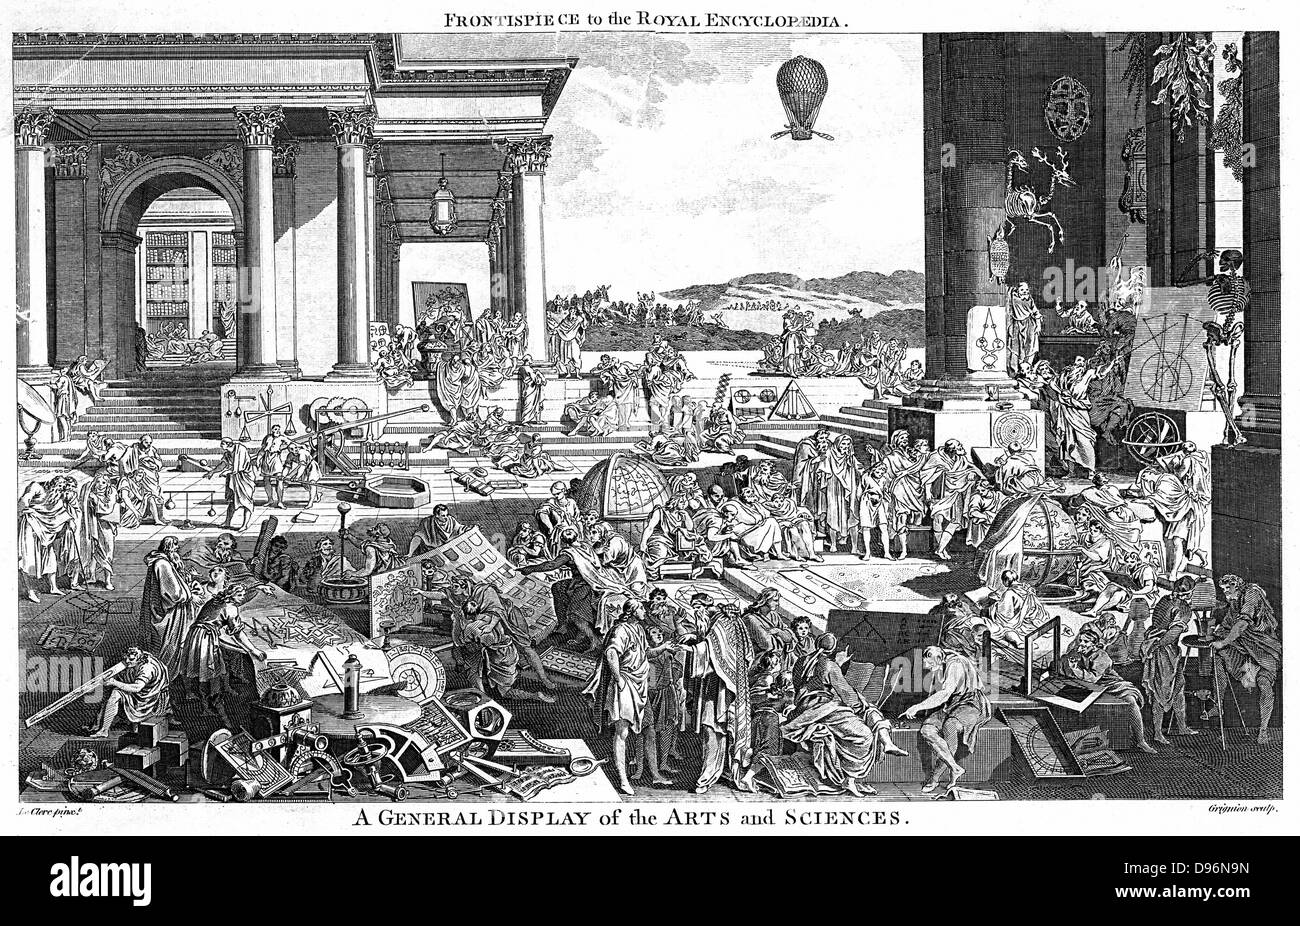 A General Display of Arts and Sciences. Engraving by Reynolds Grignion  after the picture by Leclerc. In this version, - Stock Image